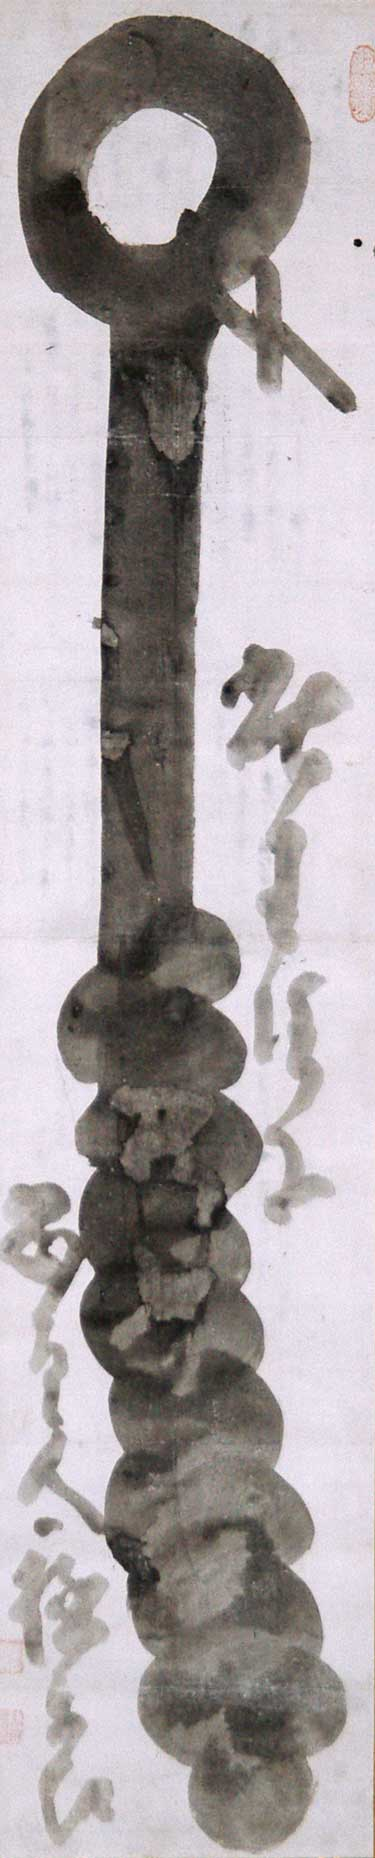 <p>Hakuin Ekaku, <em>Iron Rod</em>. Ink on paper, 51 x 10.7 inches. Ginshu Collection. Photo: Maggie Nimkin.